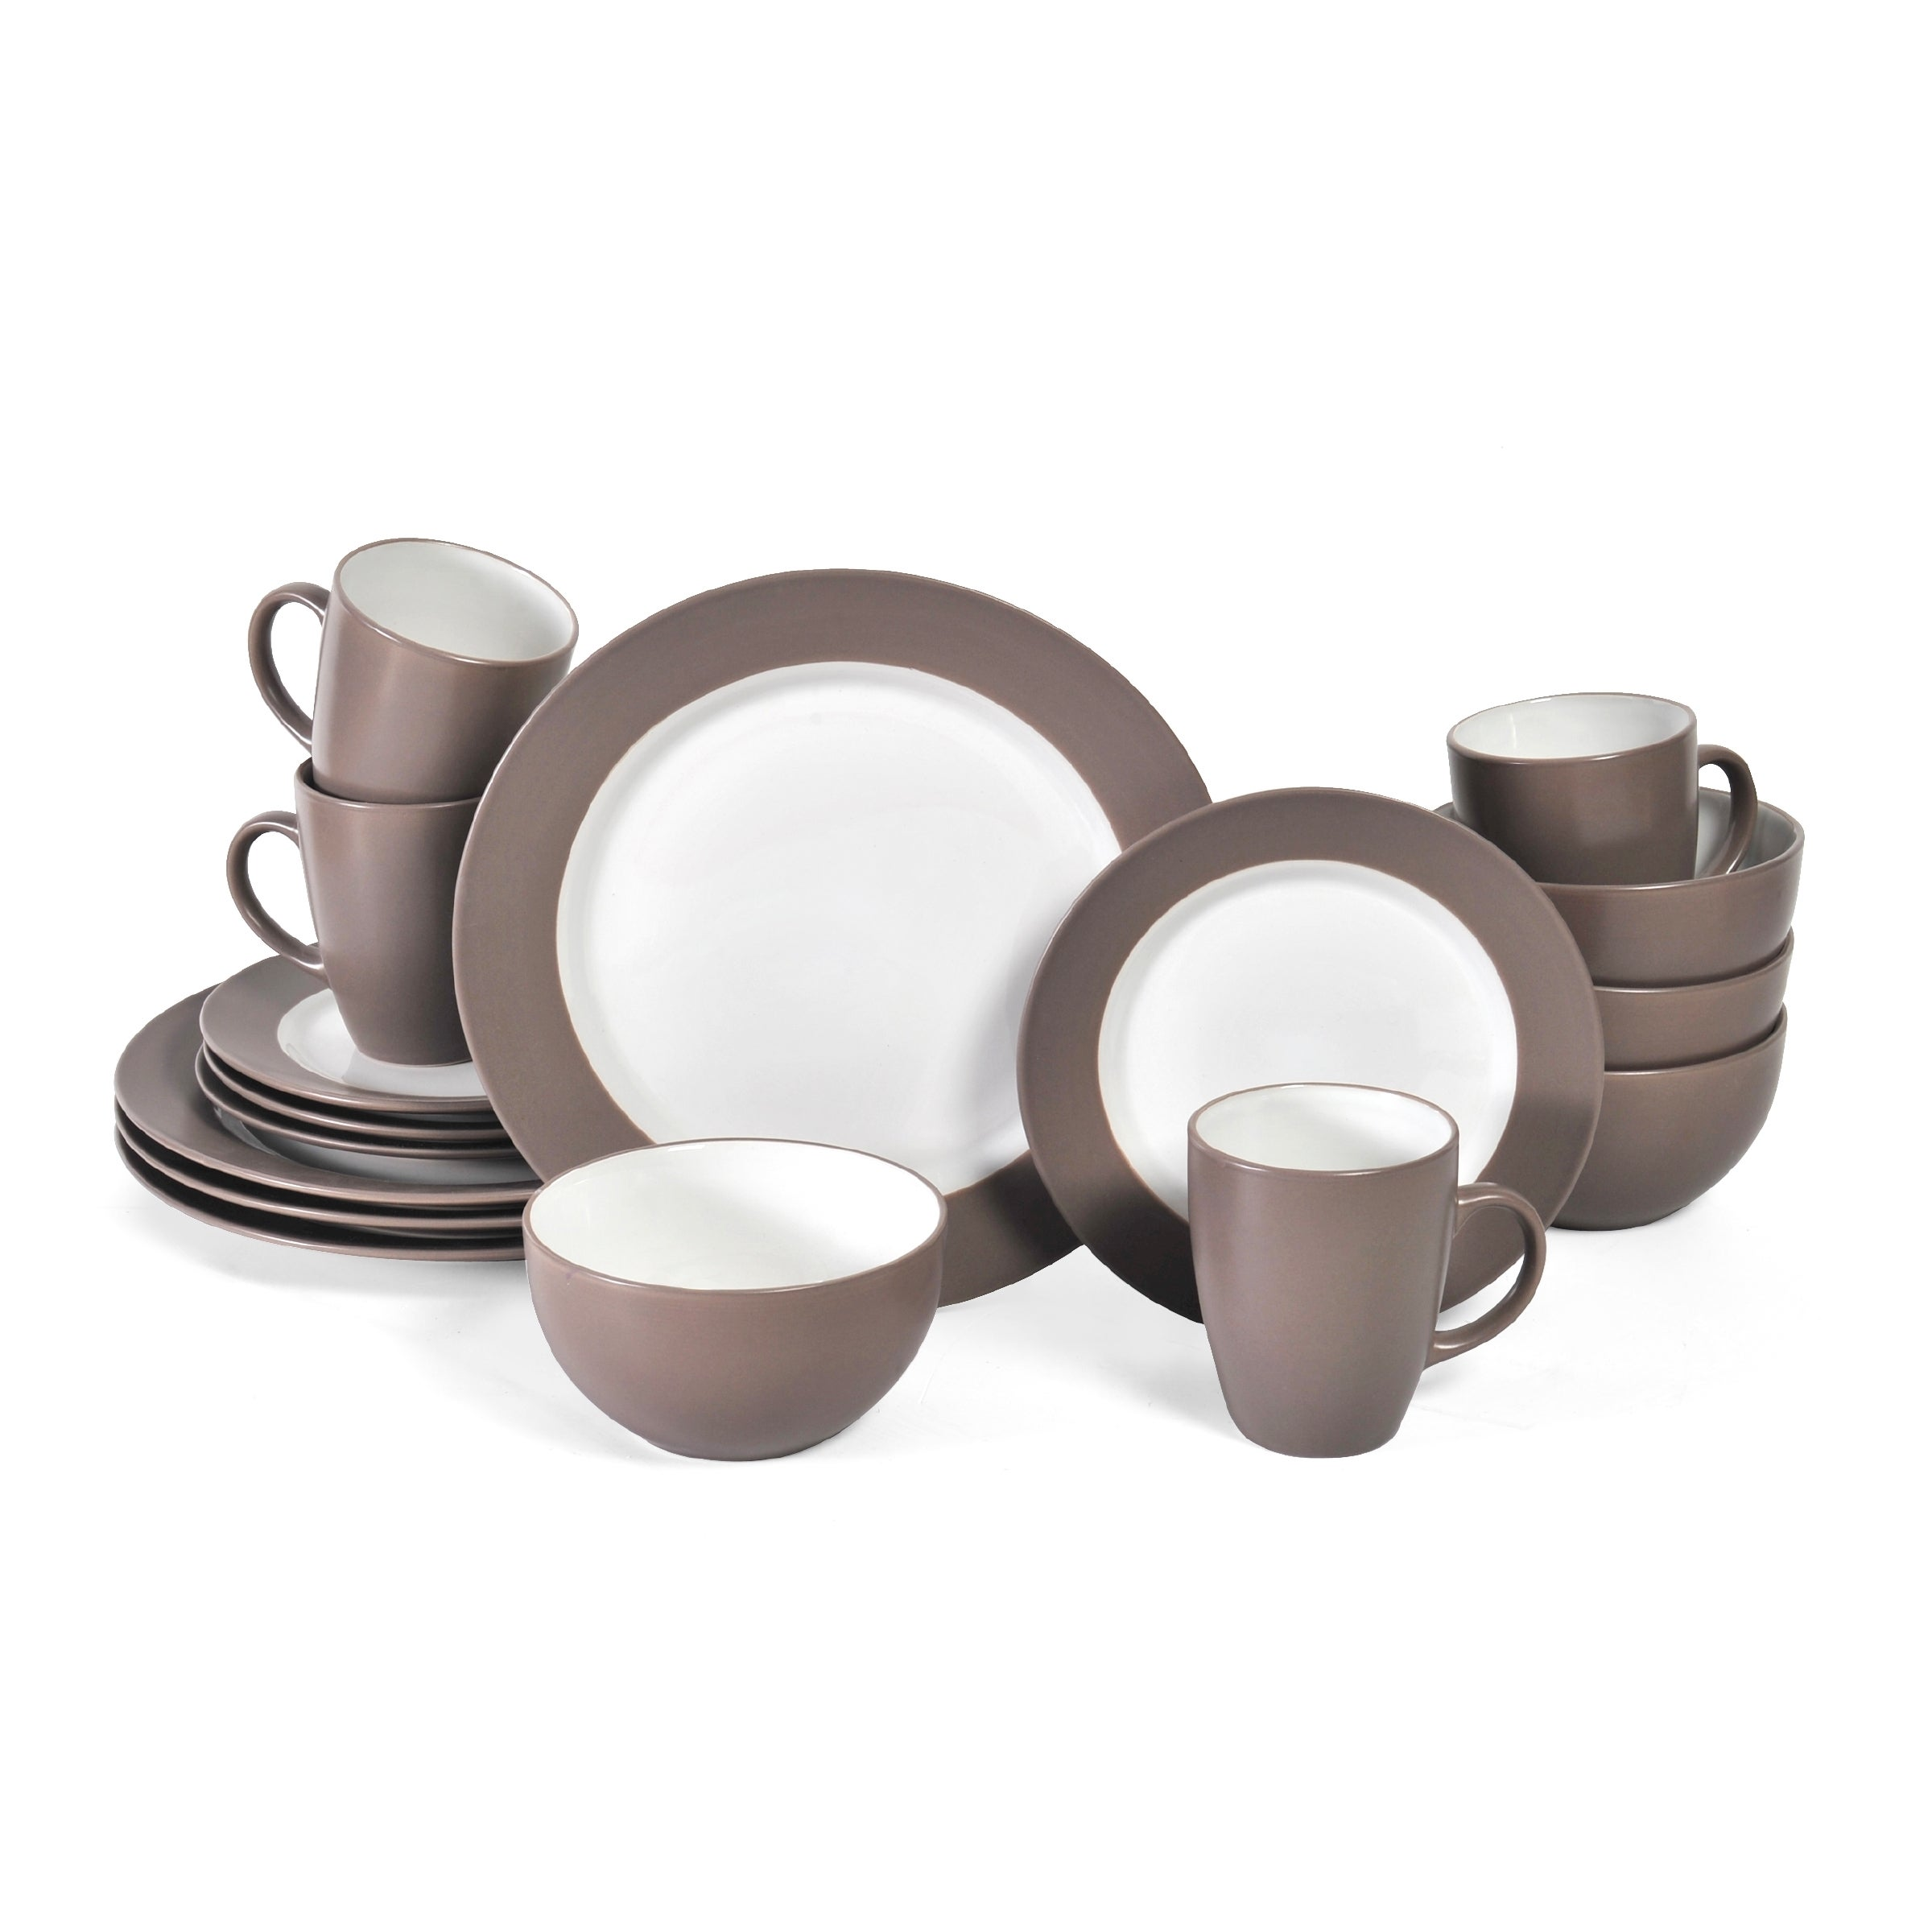 Pfaltzgraff Harmony Taupe Service for 8 with Serveware